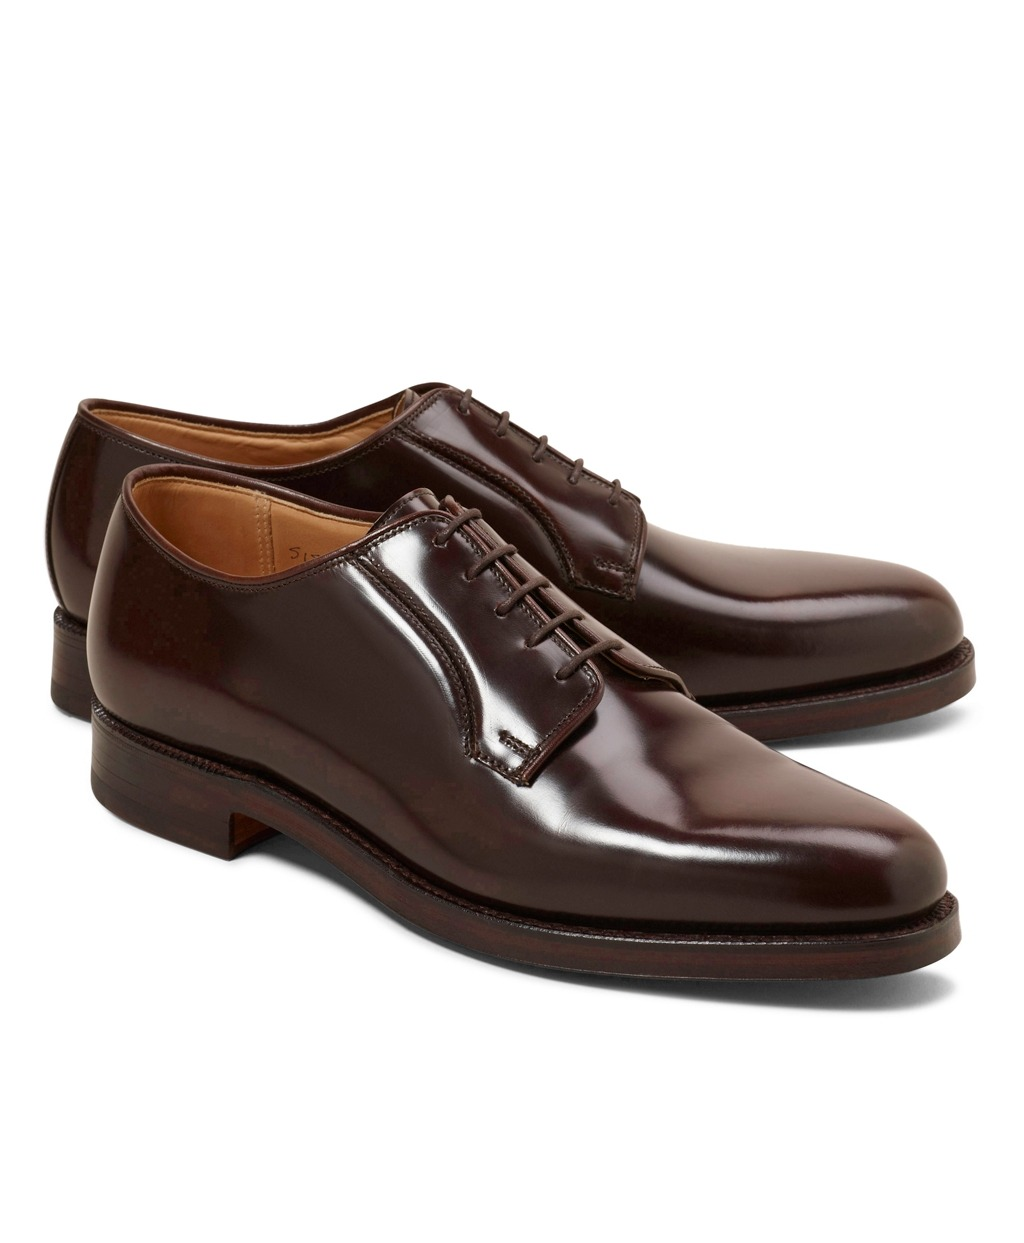 It's On Sale: Brooks Brothers Shoes